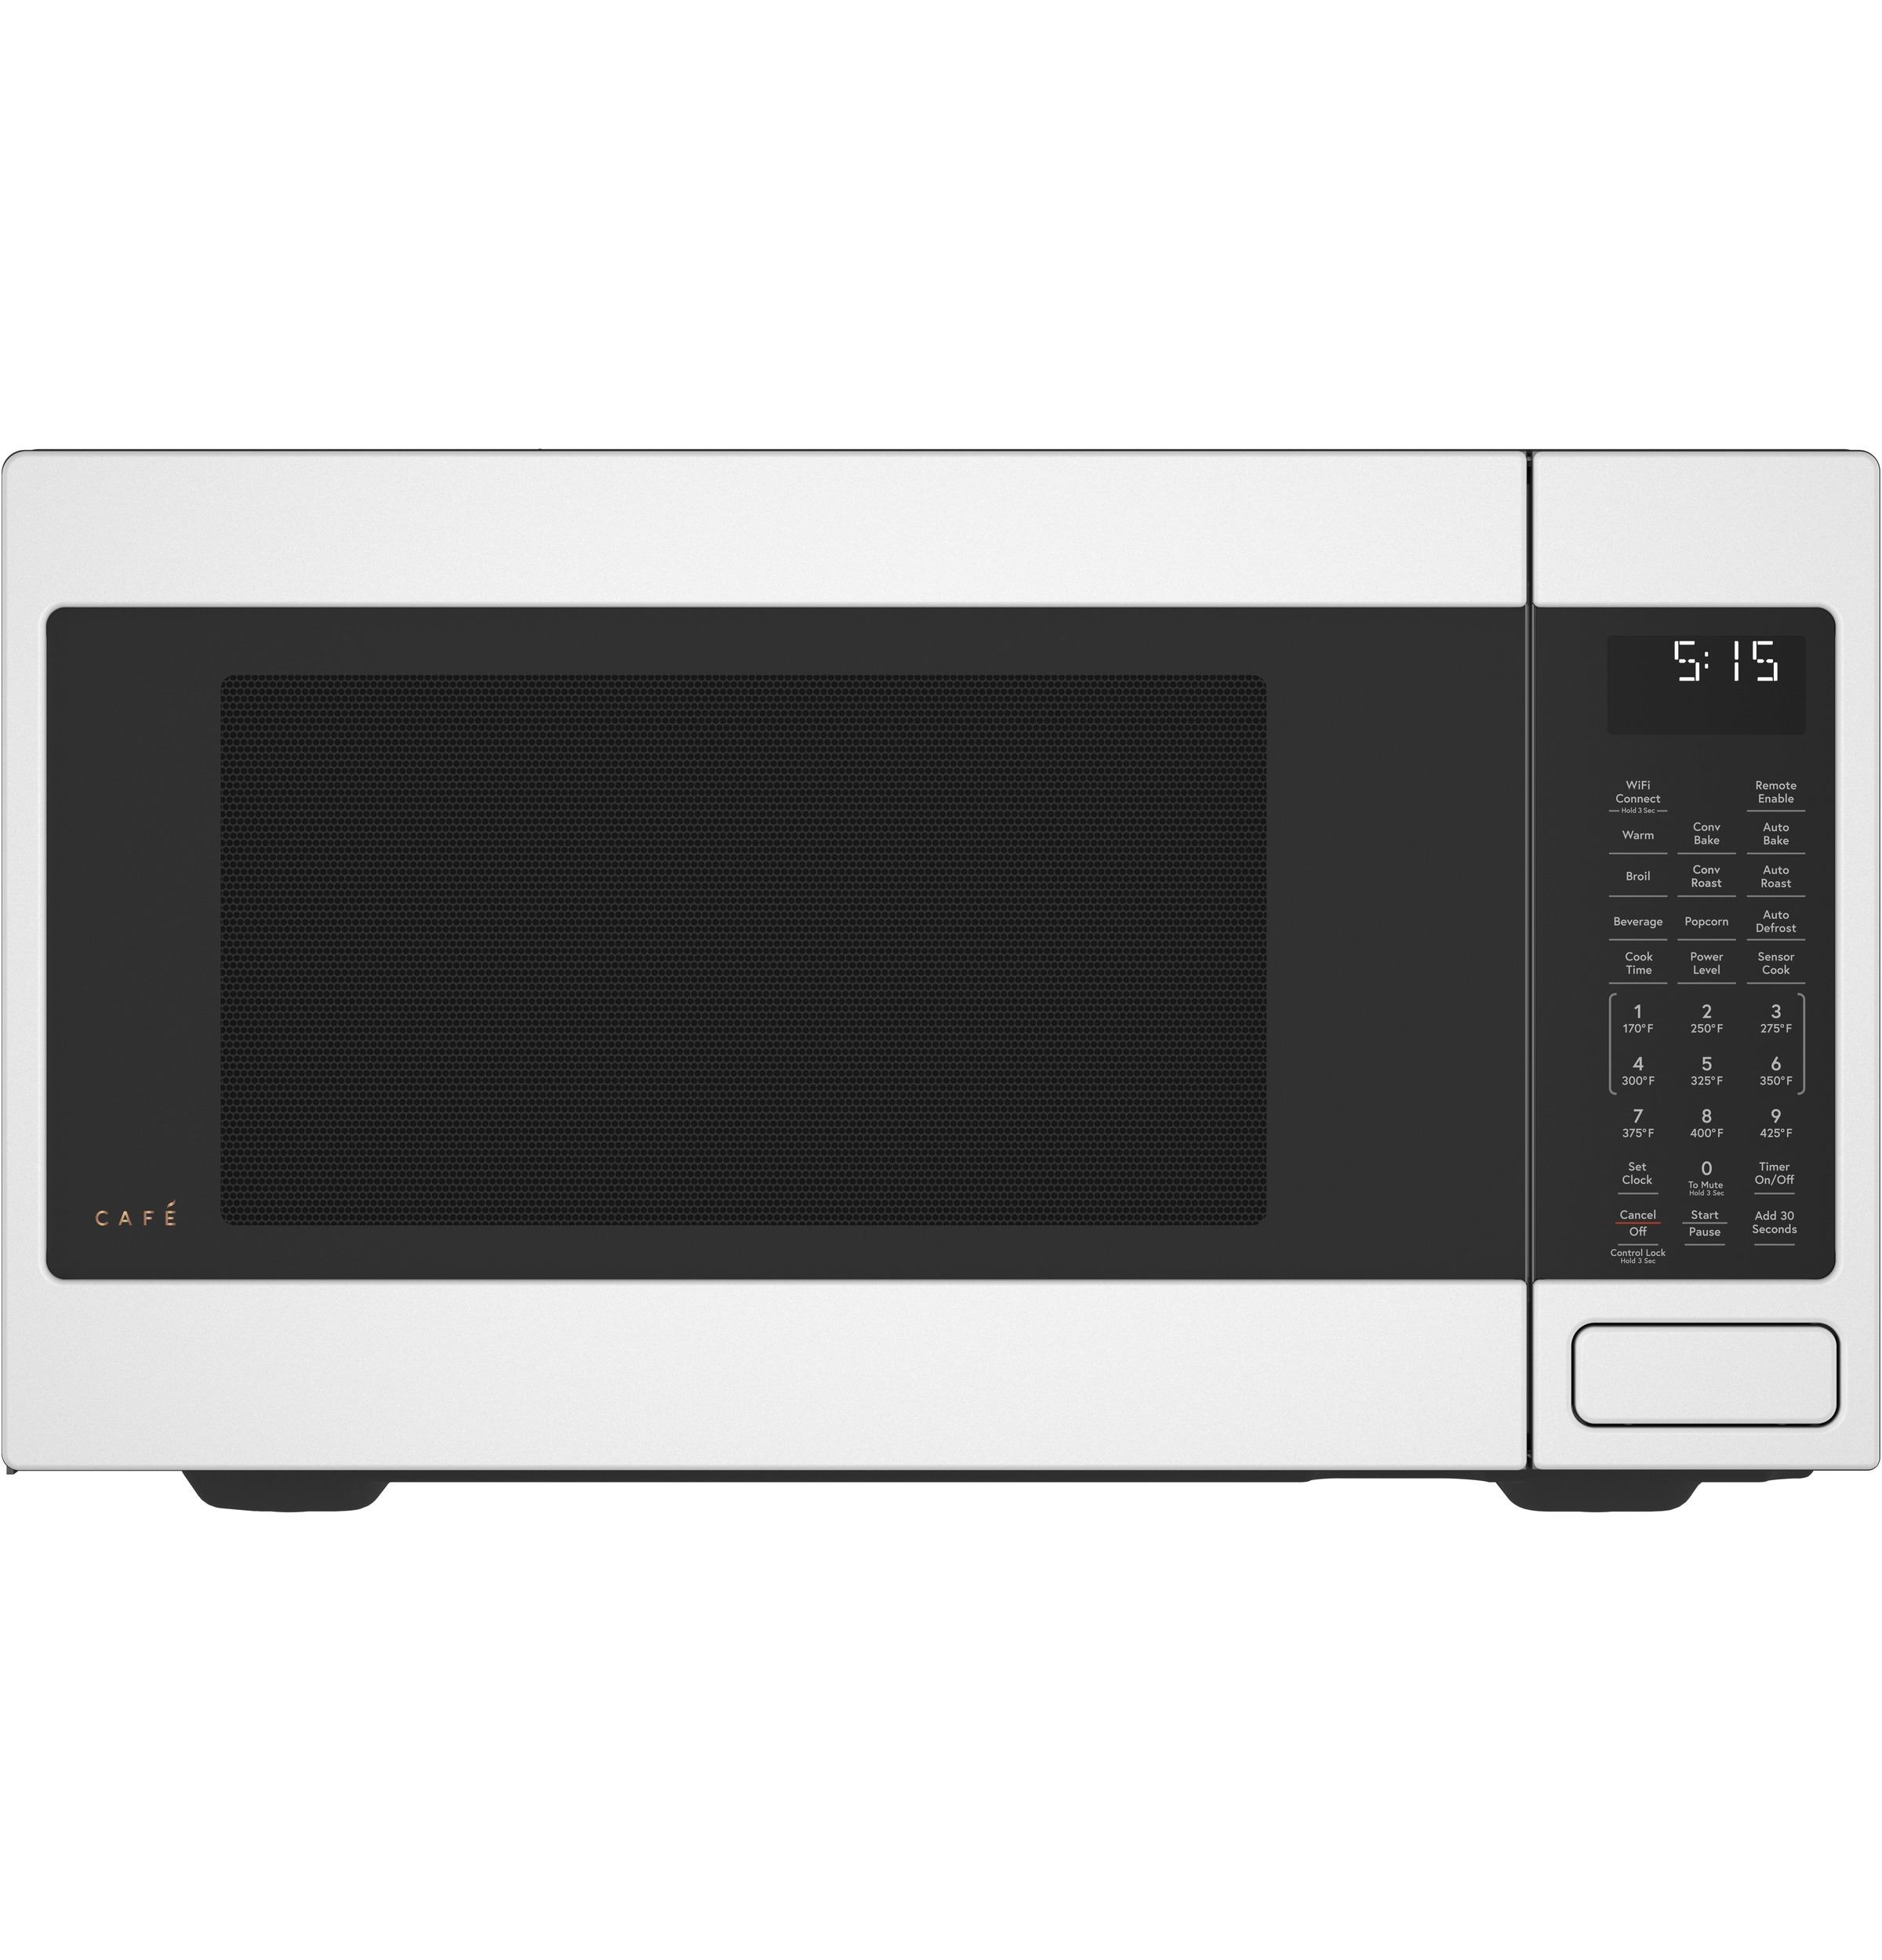 Cafe Café™ 1.5 Cu. Ft. Smart Countertop Convection/Microwave Oven